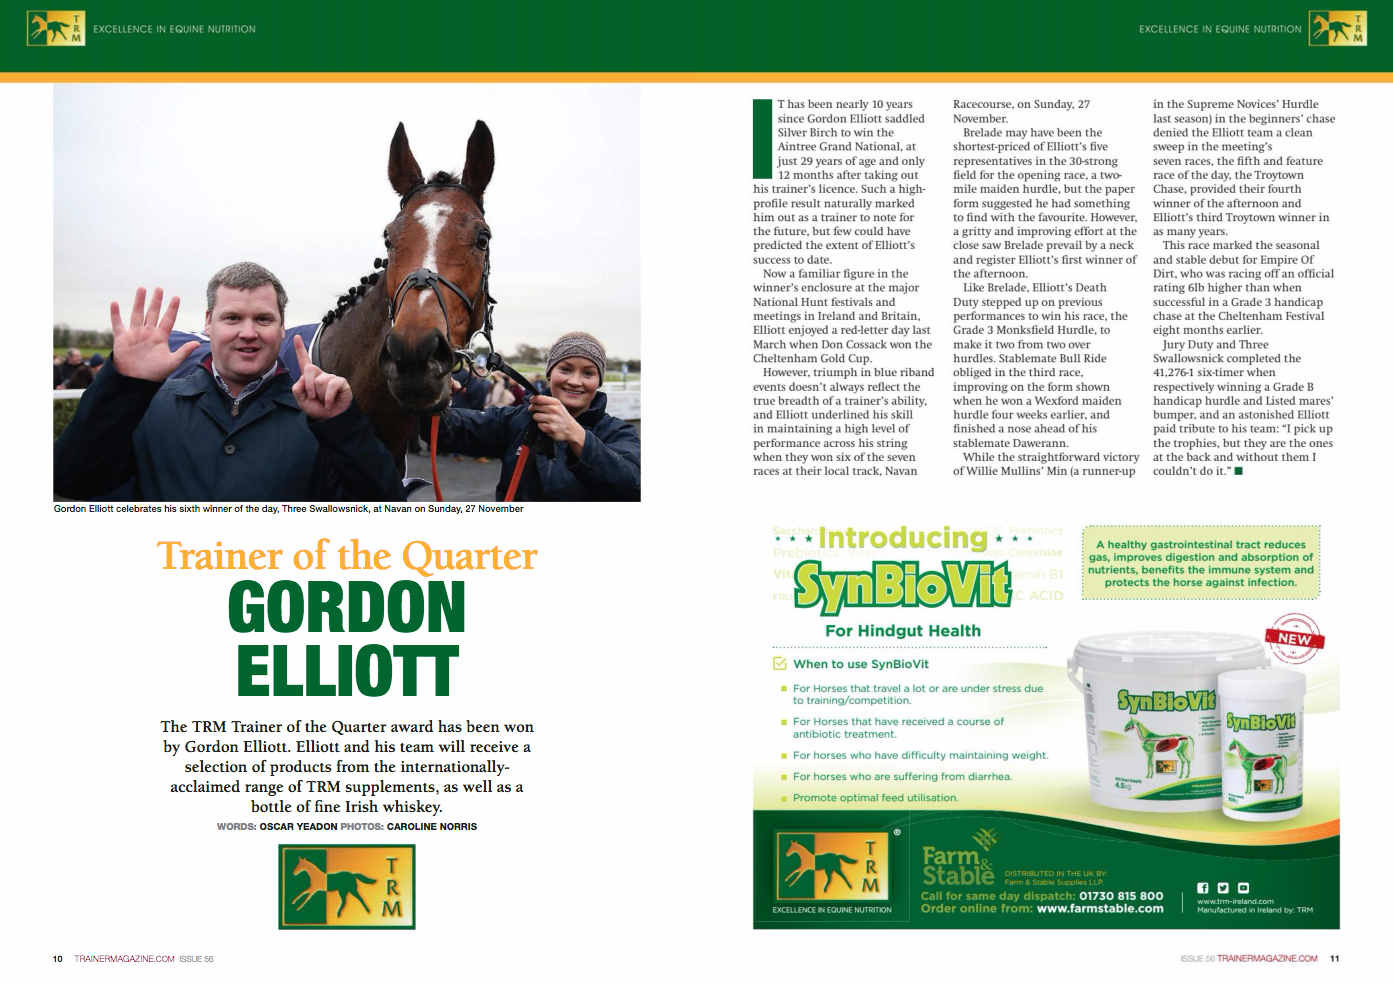 Trainer of the Quarter GORDON ELLIOTT The TRM Trainer of the Quarter award has been won by Gordon Elliott. Elliott and his team will receive a selection of products from the internationallyacclaimed range of TRM supplements, as well as a bottle of fine Irish whiskey. WORDS: OSCAR YEADON PHOTOS: CAROLINE NORRIS I T has been nearly 10 years since Gordon Elliott saddled Silver Birch to win the Aintree Grand National, at just 29 years of age and only 12 months after taking out his trainer's licence. Such a highprofi le result naturally marked him out as a trainer to note for the future, but few could have predicted the extent of Elliott's success to date. Now a familiar fi gure in the winner's enclosure at the major National Hunt festivals and meetings in Ireland and Britain, Elliott enjoyed a red-letter day last March when Don Cossack won the Cheltenham Gold Cup. However, triumph in blue riband events doesn't always refl ect the true breadth of a trainer's ability, and Elliott underlined his skill in maintaining a high level of performance across his string when they won six of the seven races at their local track, Navan Racecourse, on Sunday, 27 November. Brelade may have been the shortest-priced of Elliott's fi ve representatives in the 30-strong fi eld for the opening race, a twomile maiden hurdle, but the paper form suggested he had something to fi nd with the favourite. However, a gritty and improving effort at the close saw Brelade prevail by a neck and register Elliott's fi rst winner of the afternoon. Like Brelade, Elliott's Death Duty stepped up on previous performances to win his race, the Grade 3 Monksfi eld Hurdle, to make it two from two over hurdles. Stablemate Bull Ride obliged in the third race, improving on the form shown when he won a Wexford maiden hurdle four weeks earlier, and fi nished a nose ahead of his stablemate Dawerann. While the straightforward victory of Willie Mullins' Min (a runner-up Call for same day dispatch: 01730 815 800 Order onlin